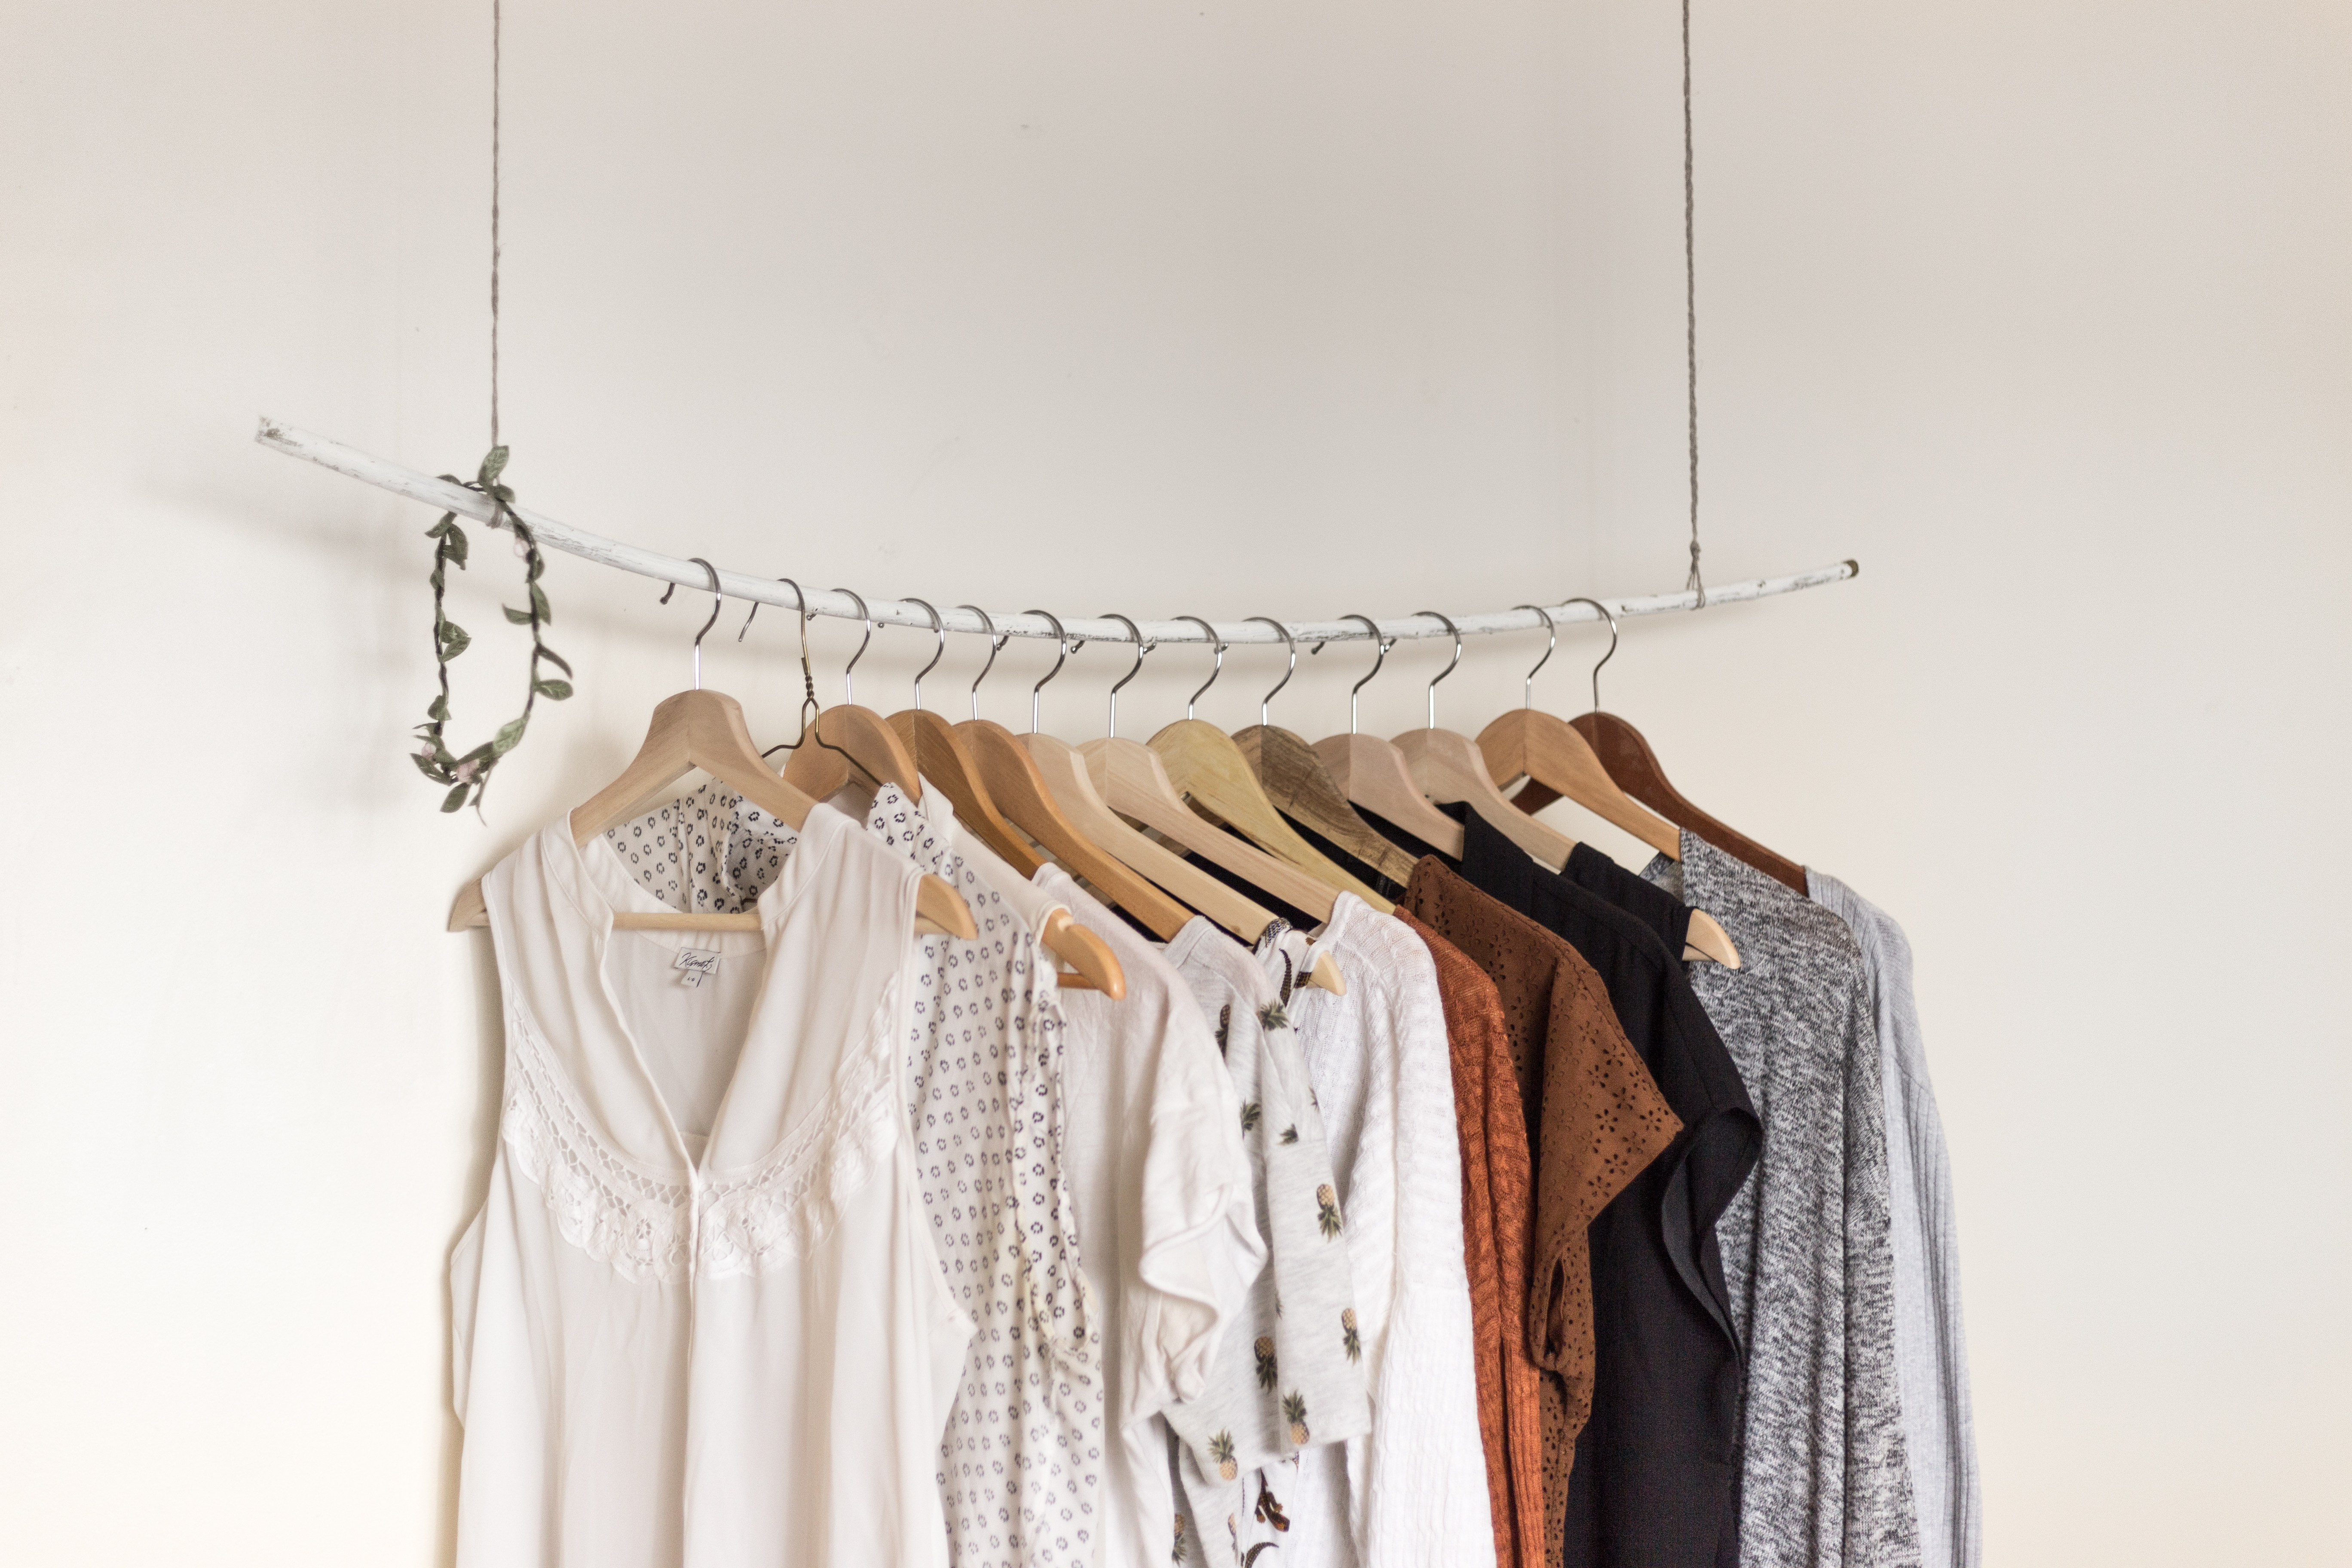 x [OLD] Building Your Capsule Wardrobe